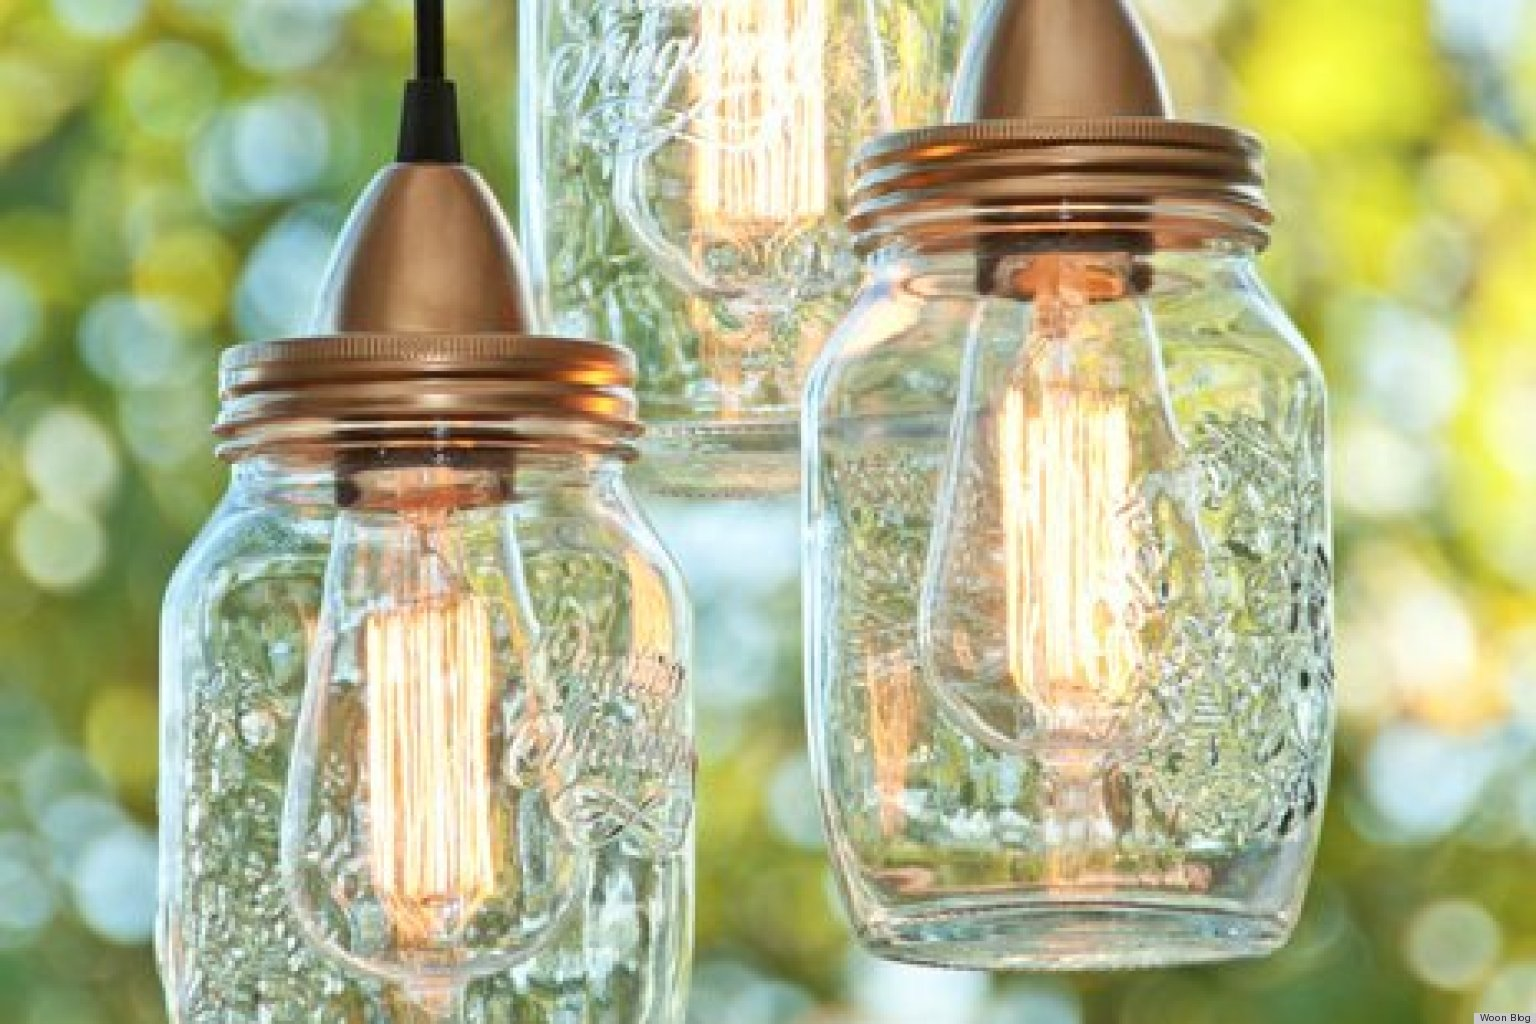 Outdoor Lighting Ideas Diy 7 diy outdoor lighting ideas to illuminate your summer nights 7 diy outdoor lighting ideas to illuminate your summer nights photos huffpost workwithnaturefo